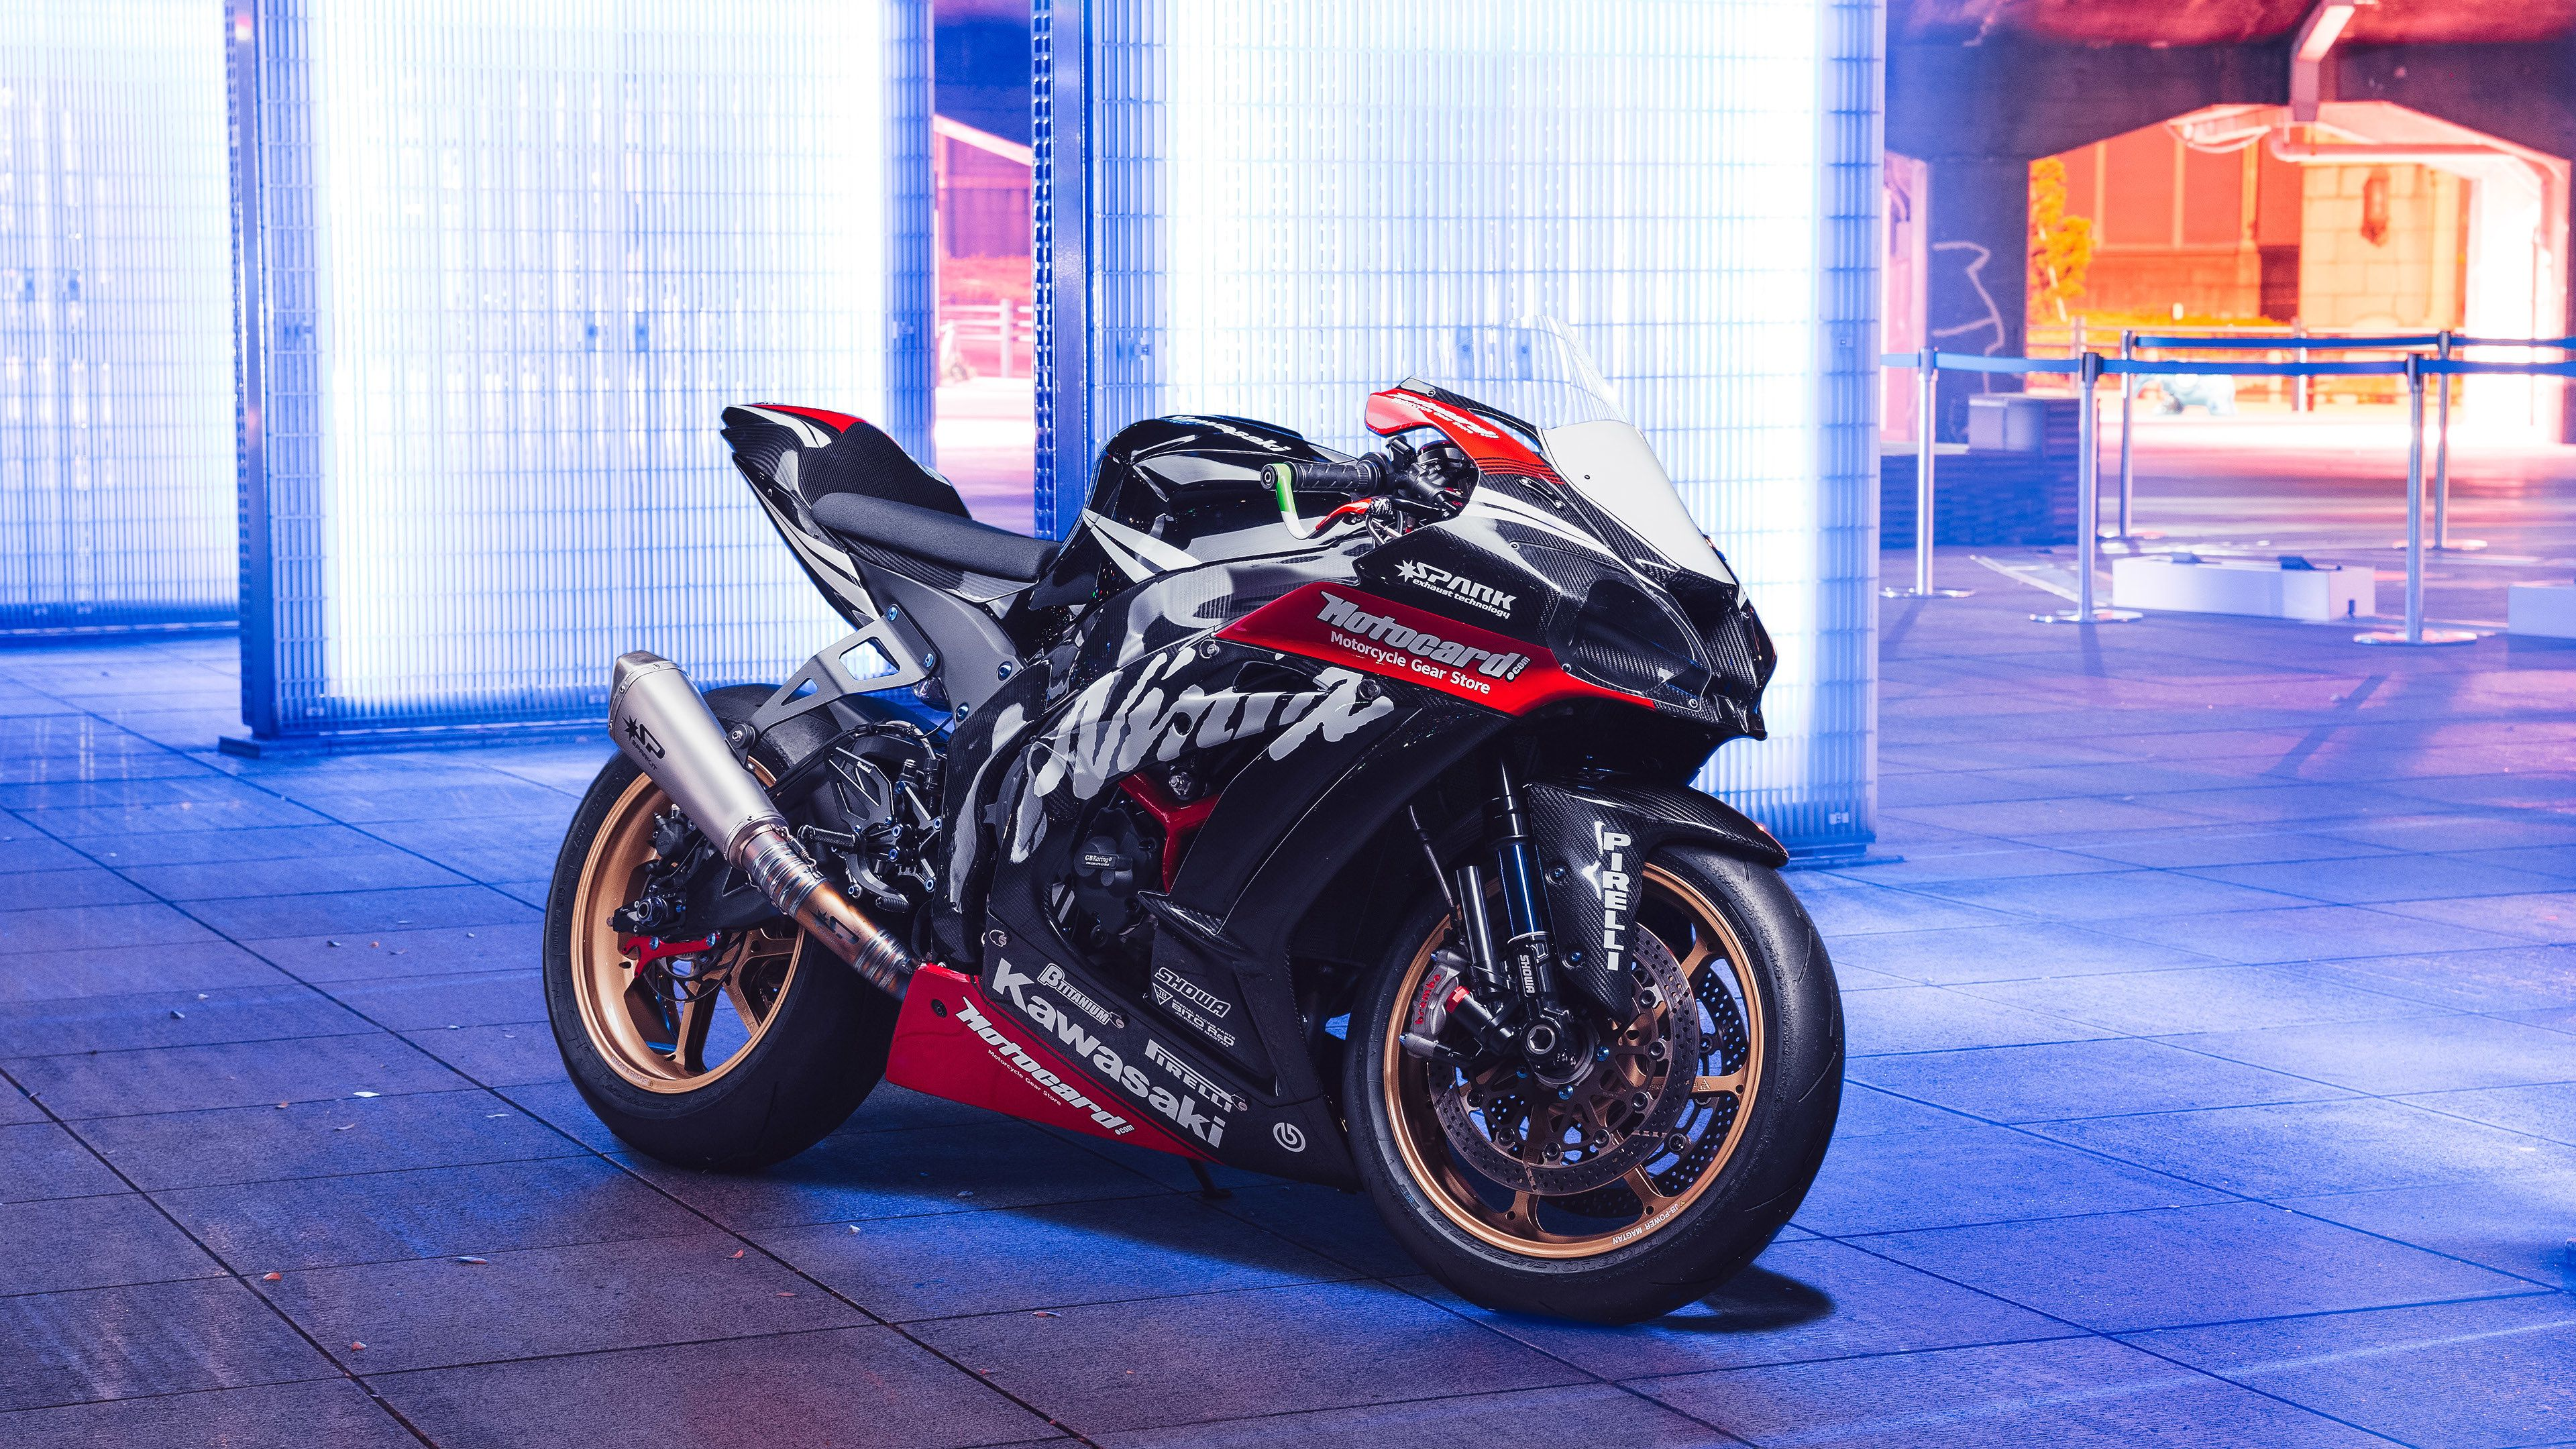 Wallpaper 4k Kawasaki Zx10r 4k 4k Wallpapers Behance Wallpapers